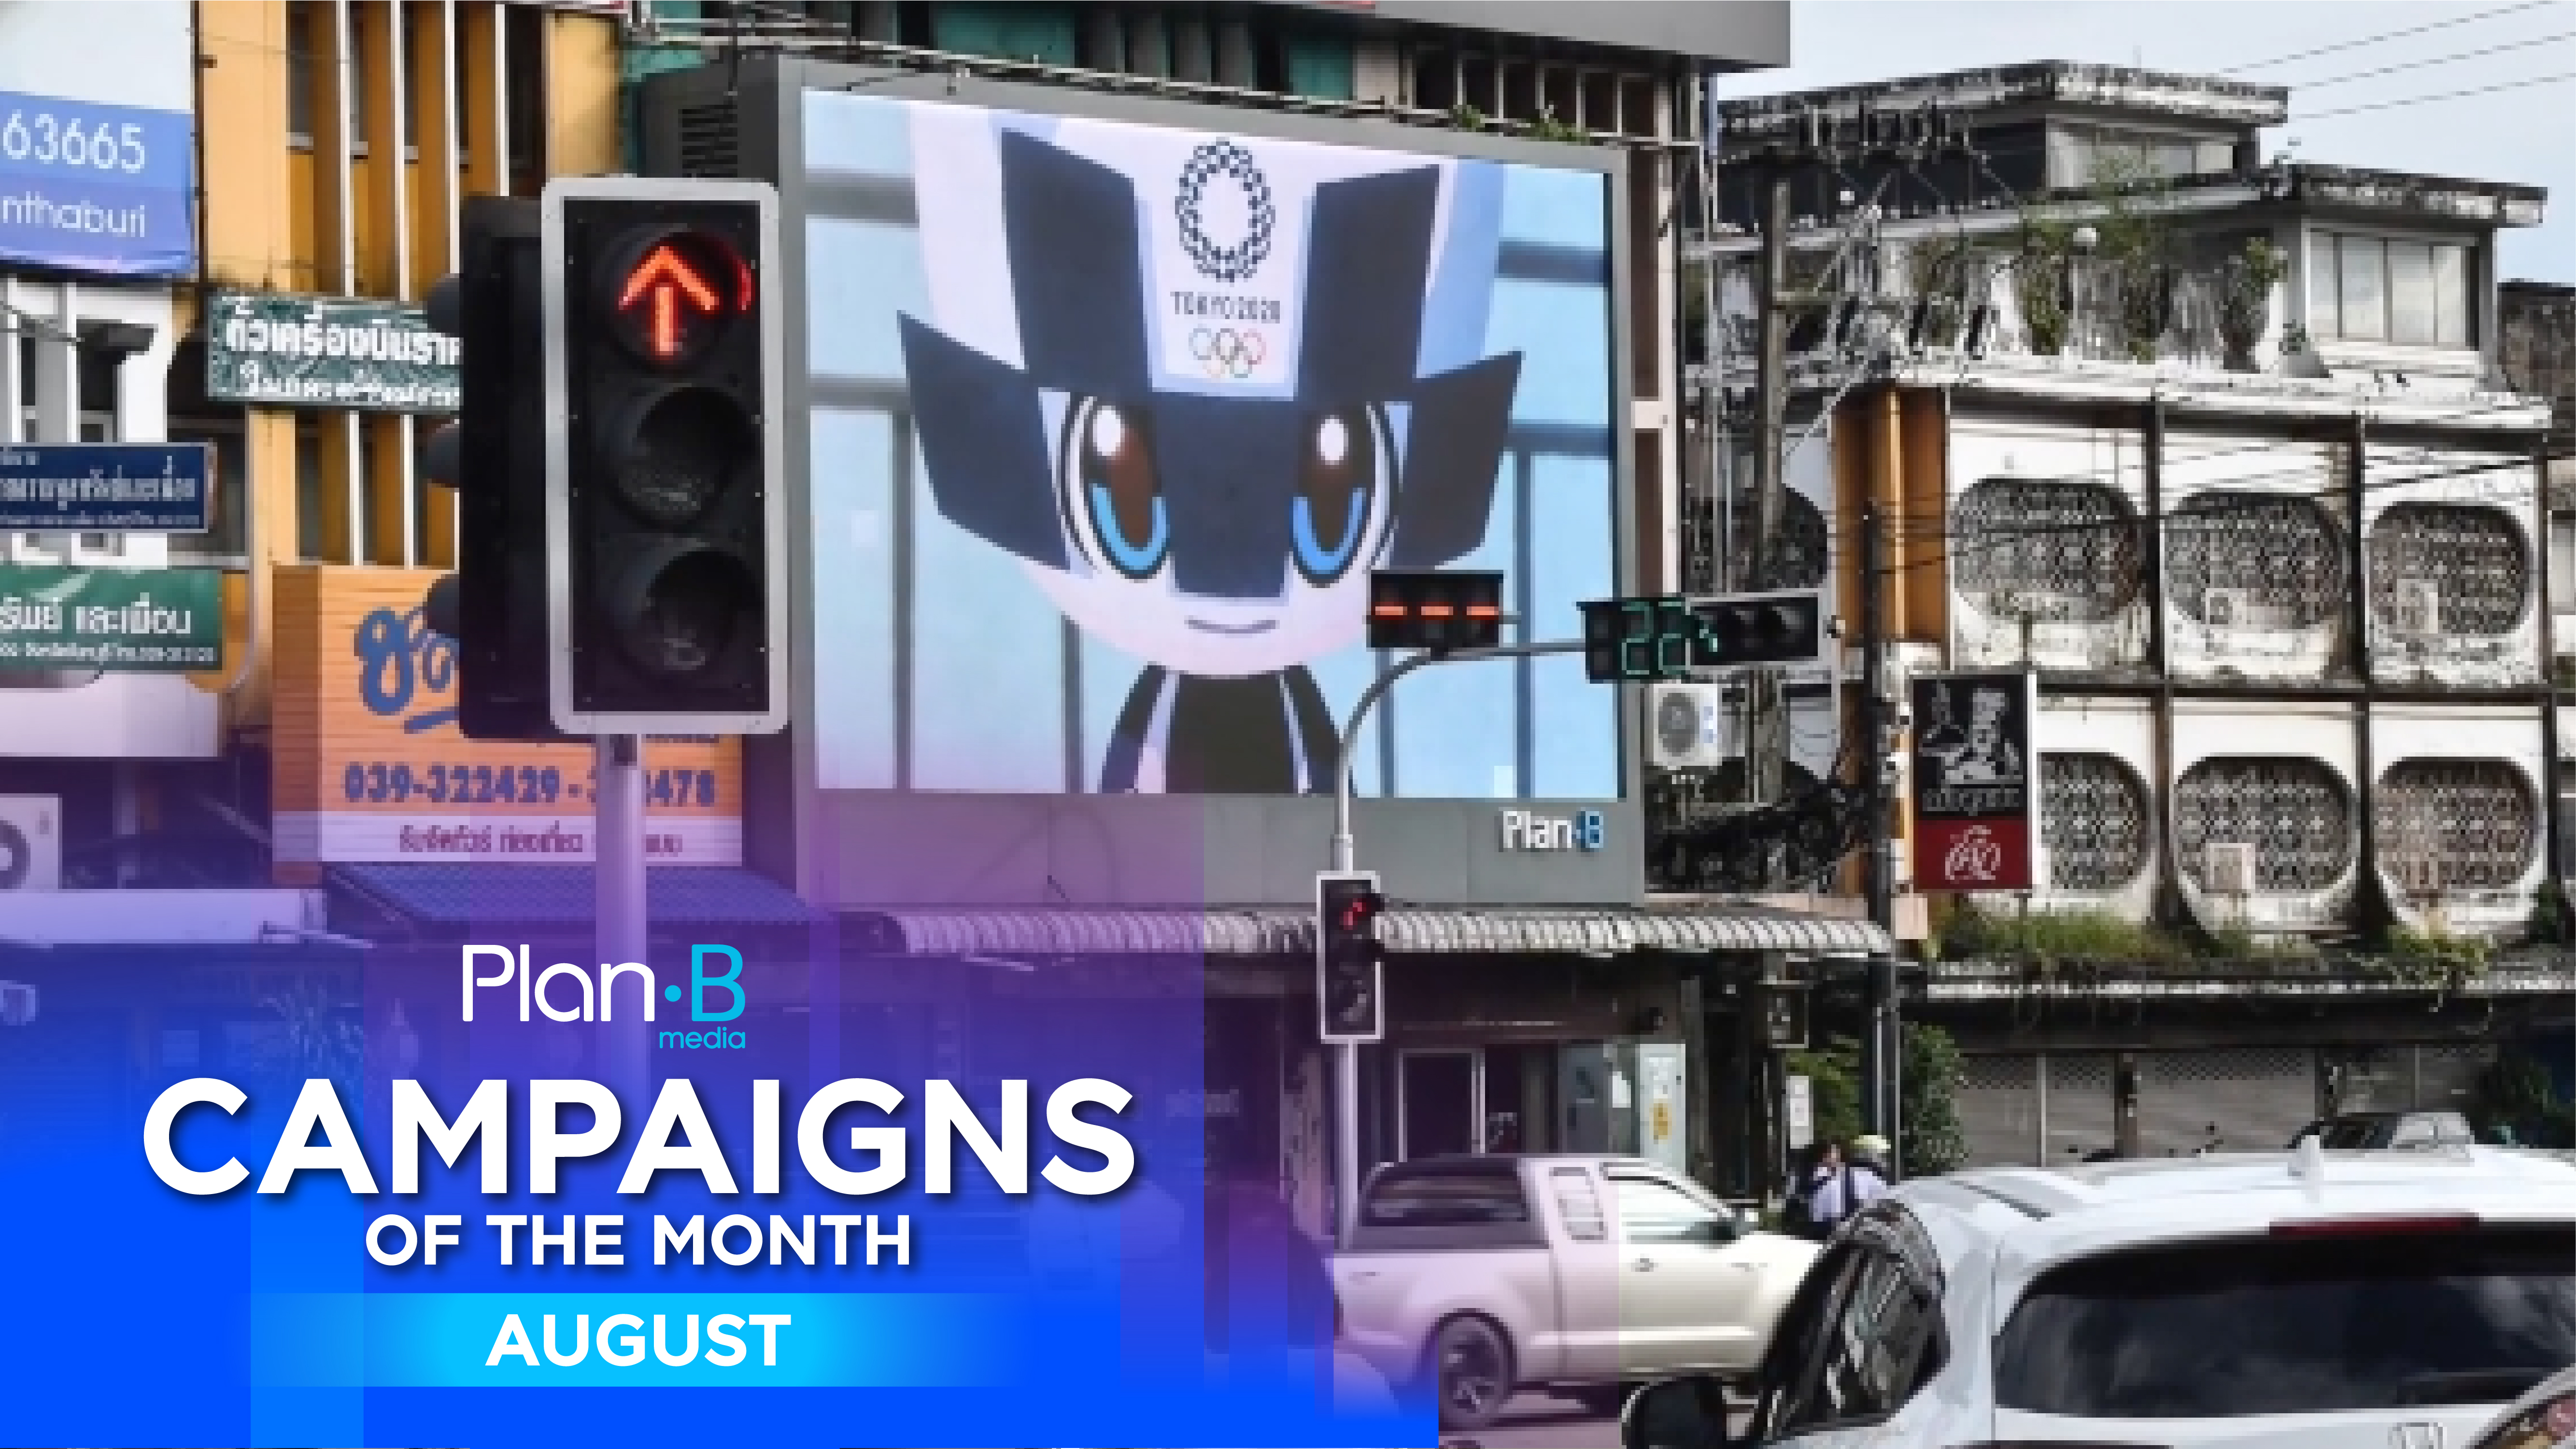 Plan B Media | Campaigns of the month | August 2019